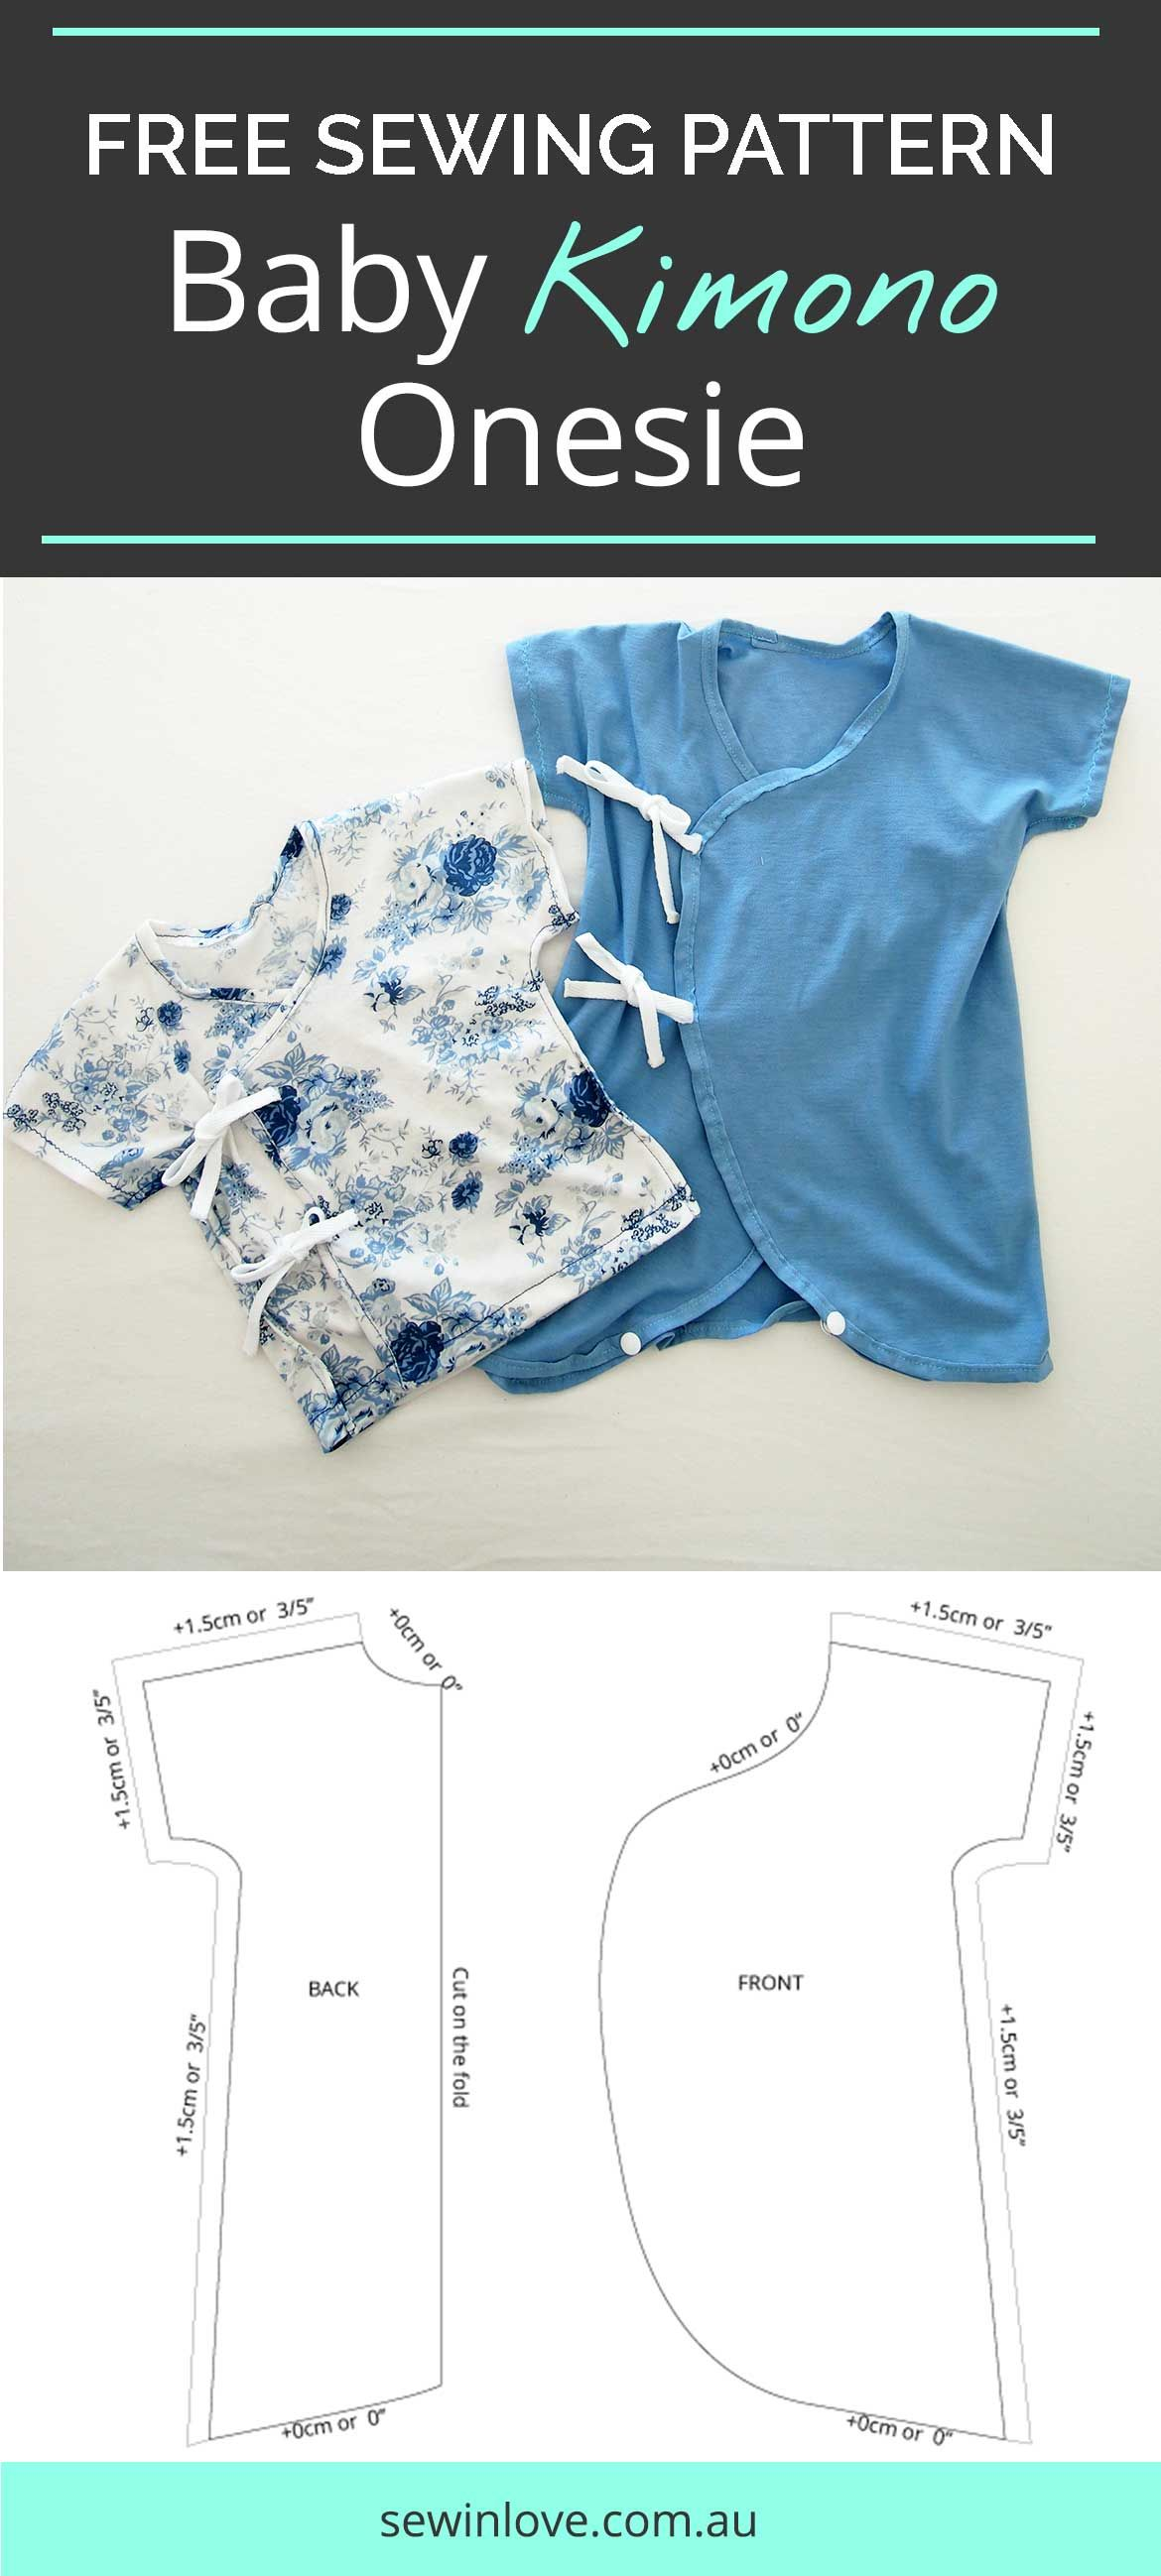 Another Baby Kimono Sewing Pattern - Onesie Version | travel ...